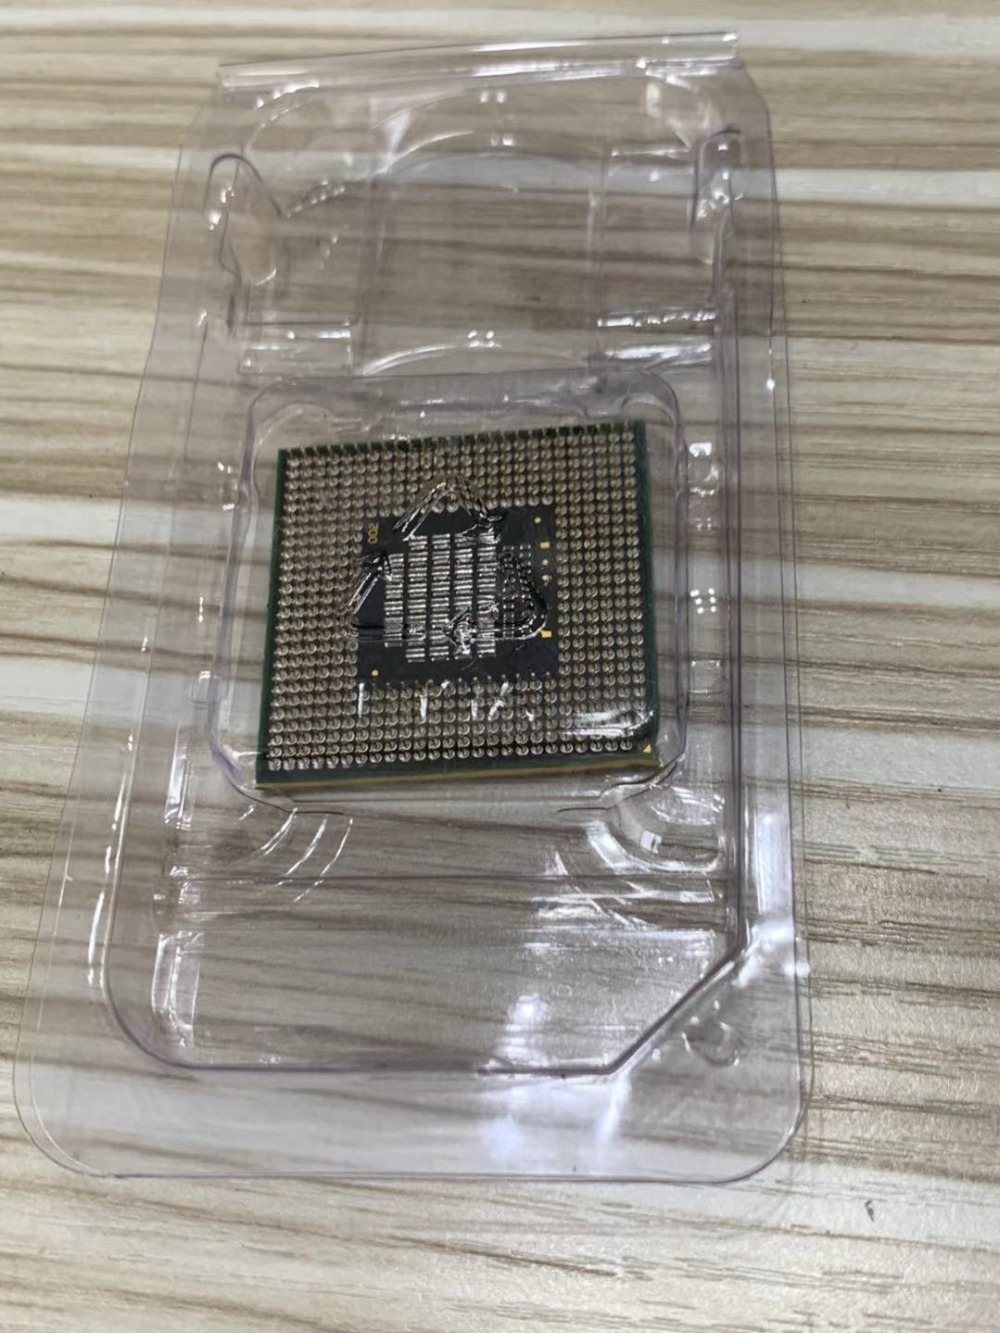 T8100 8100 CPU 3M Cache/2.1GHz/800/Dual-Core Socket 479 Laptop processor for GM45 PM45 free shipping цена